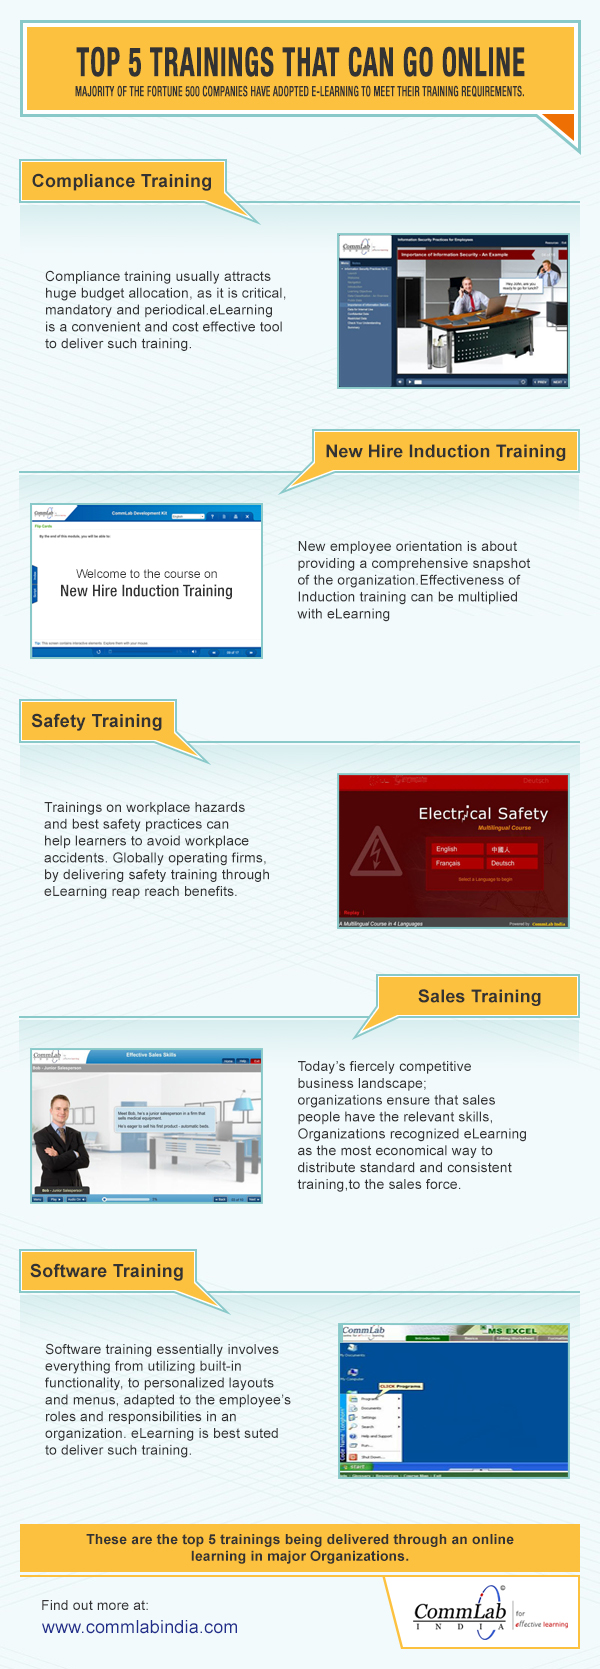 Top 5 Trainings That Can Go Online – An Infographic